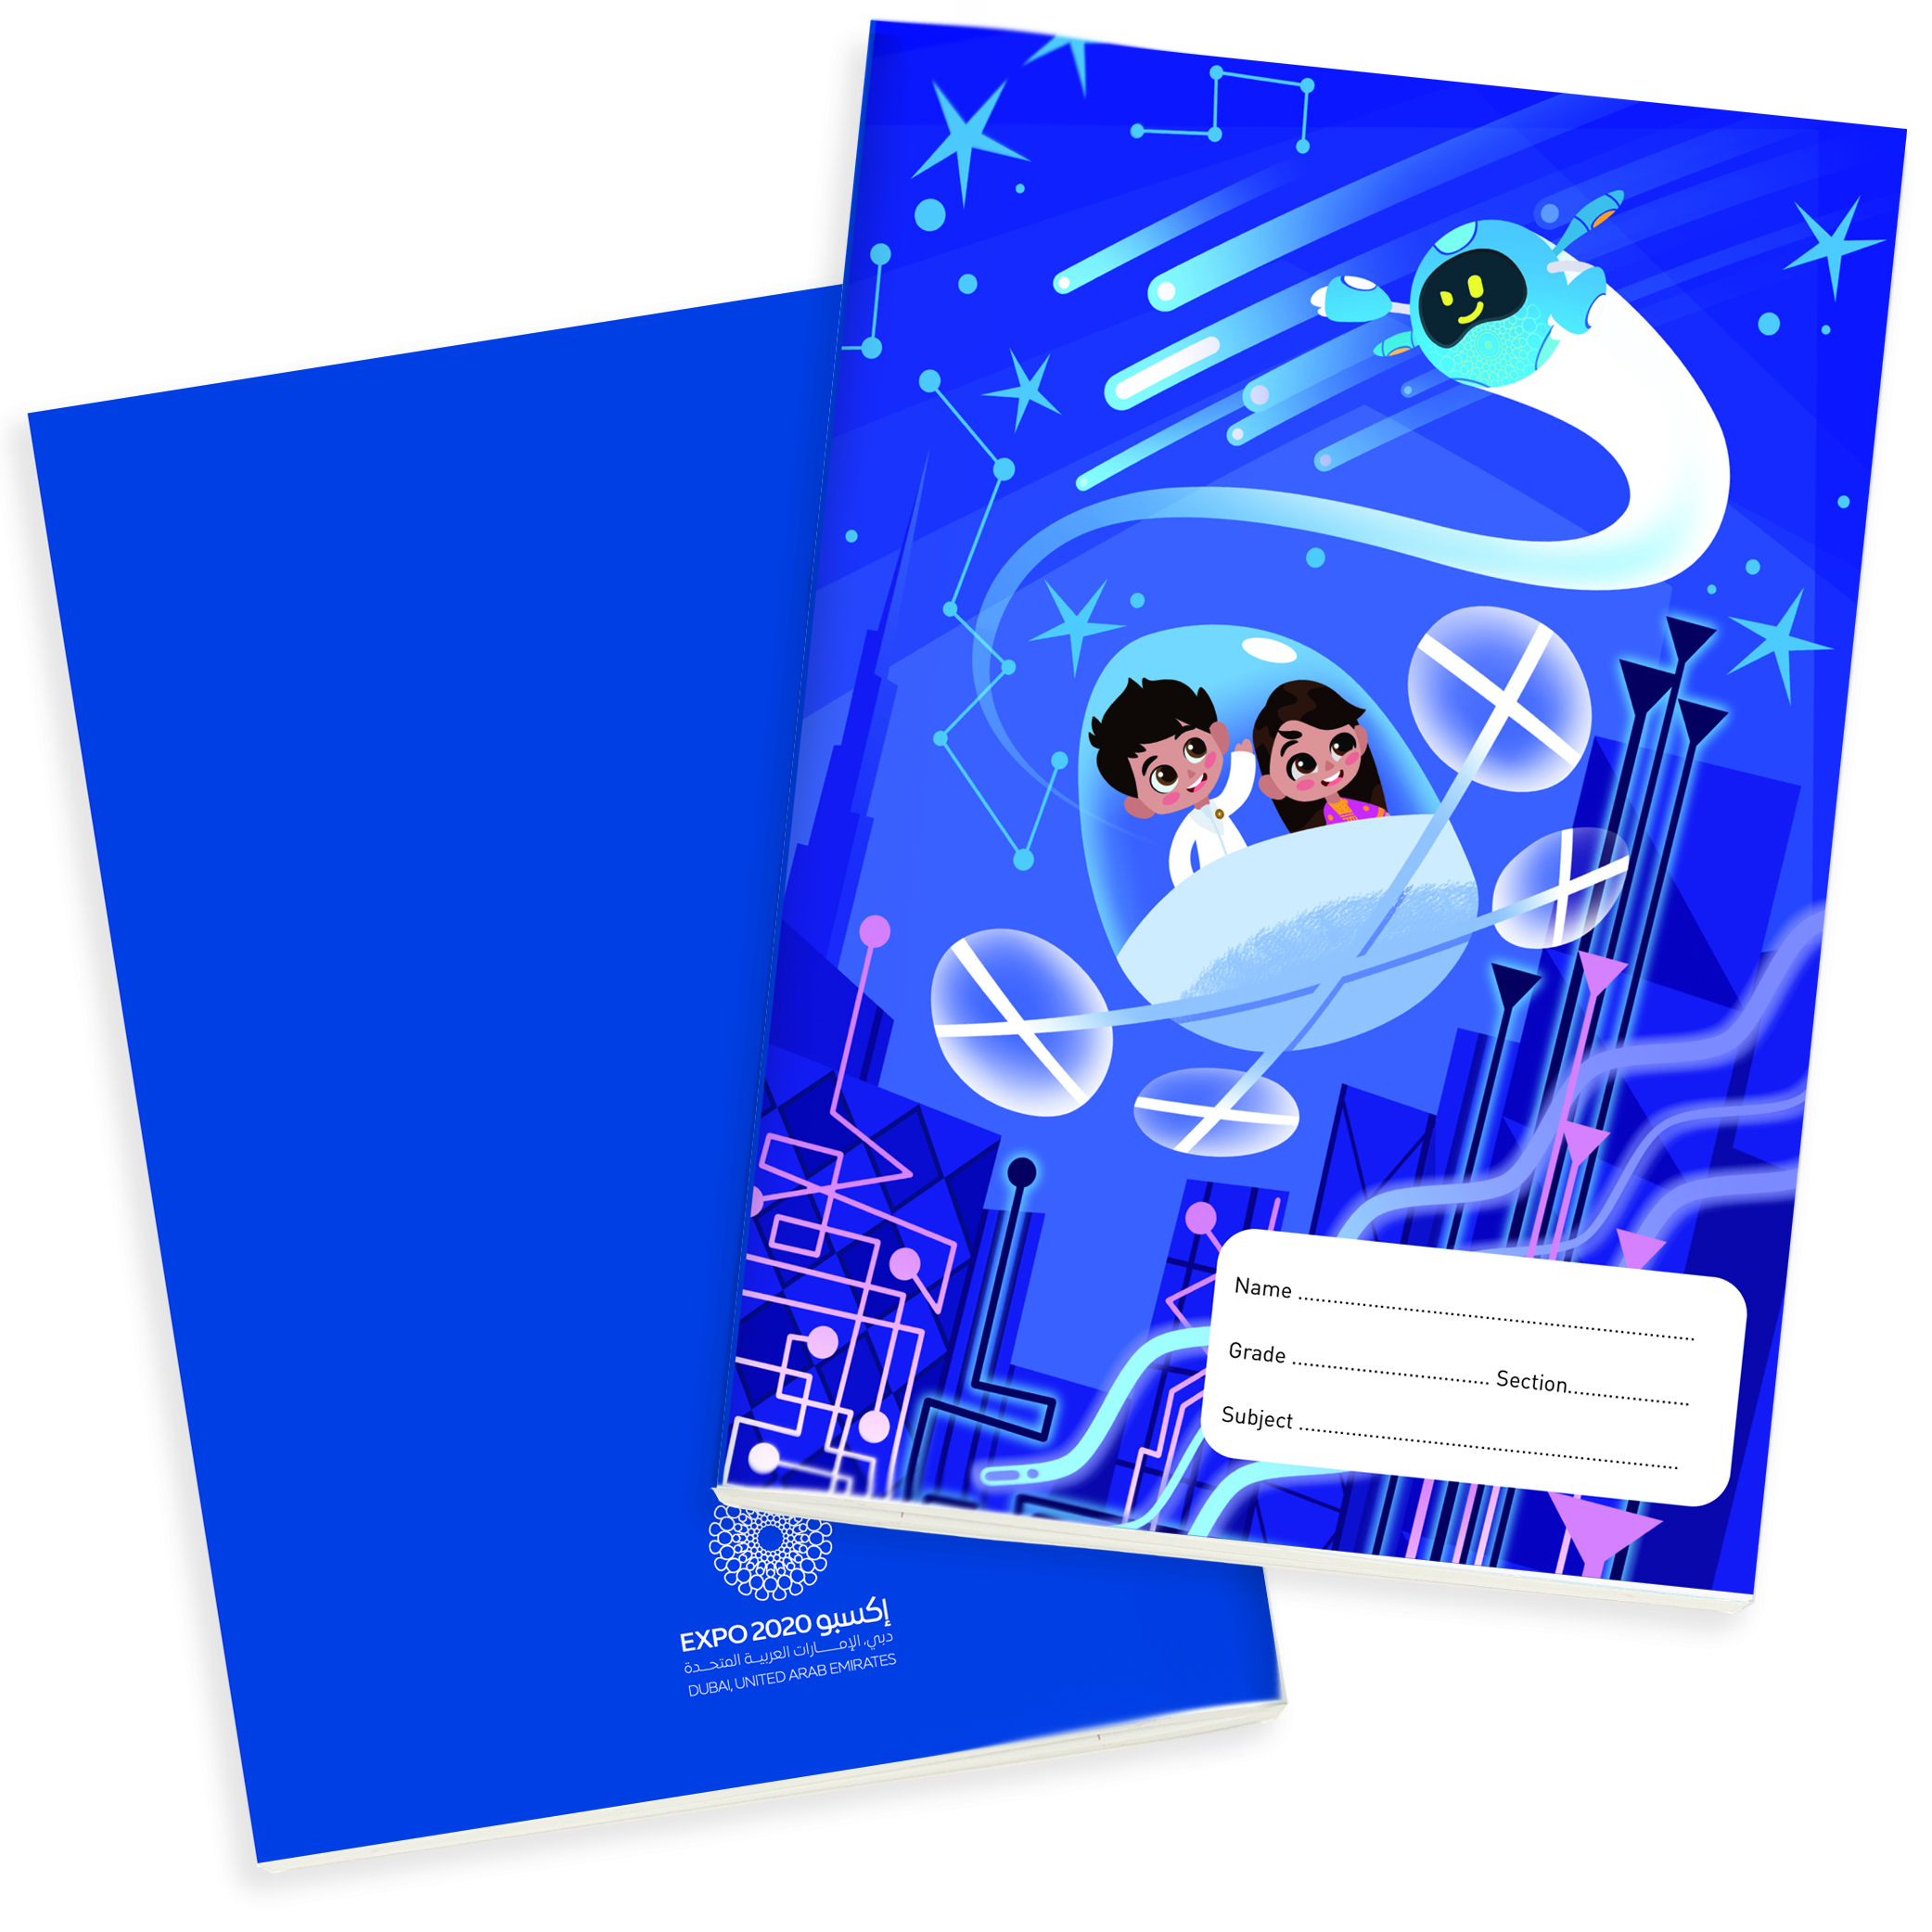 Expo 2020 Dubai Mascots Family B5 Exercise Books Pack of 4 - 96 Pages